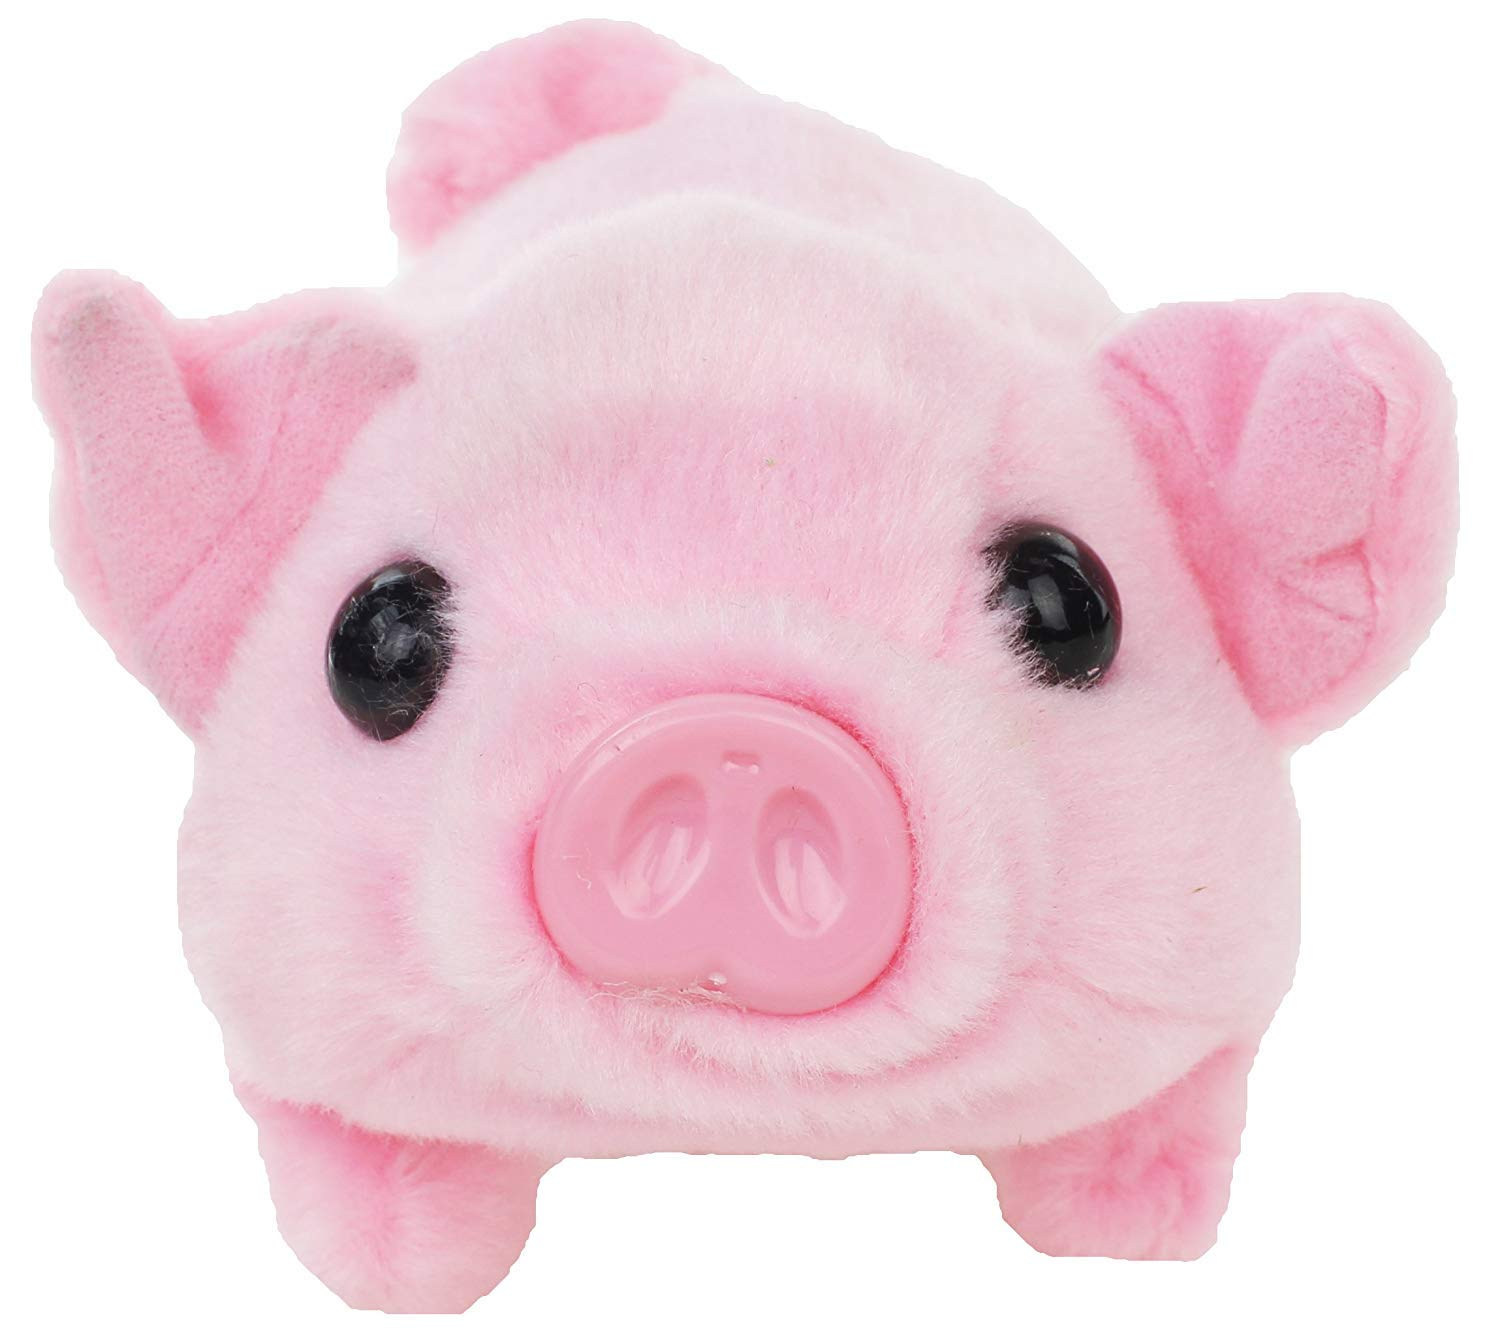 Walking Pet Pig | Wiggling, Snorting, Oinking | Battery Operated | Electronic Piggy. by Cute Piggy (Image #2)